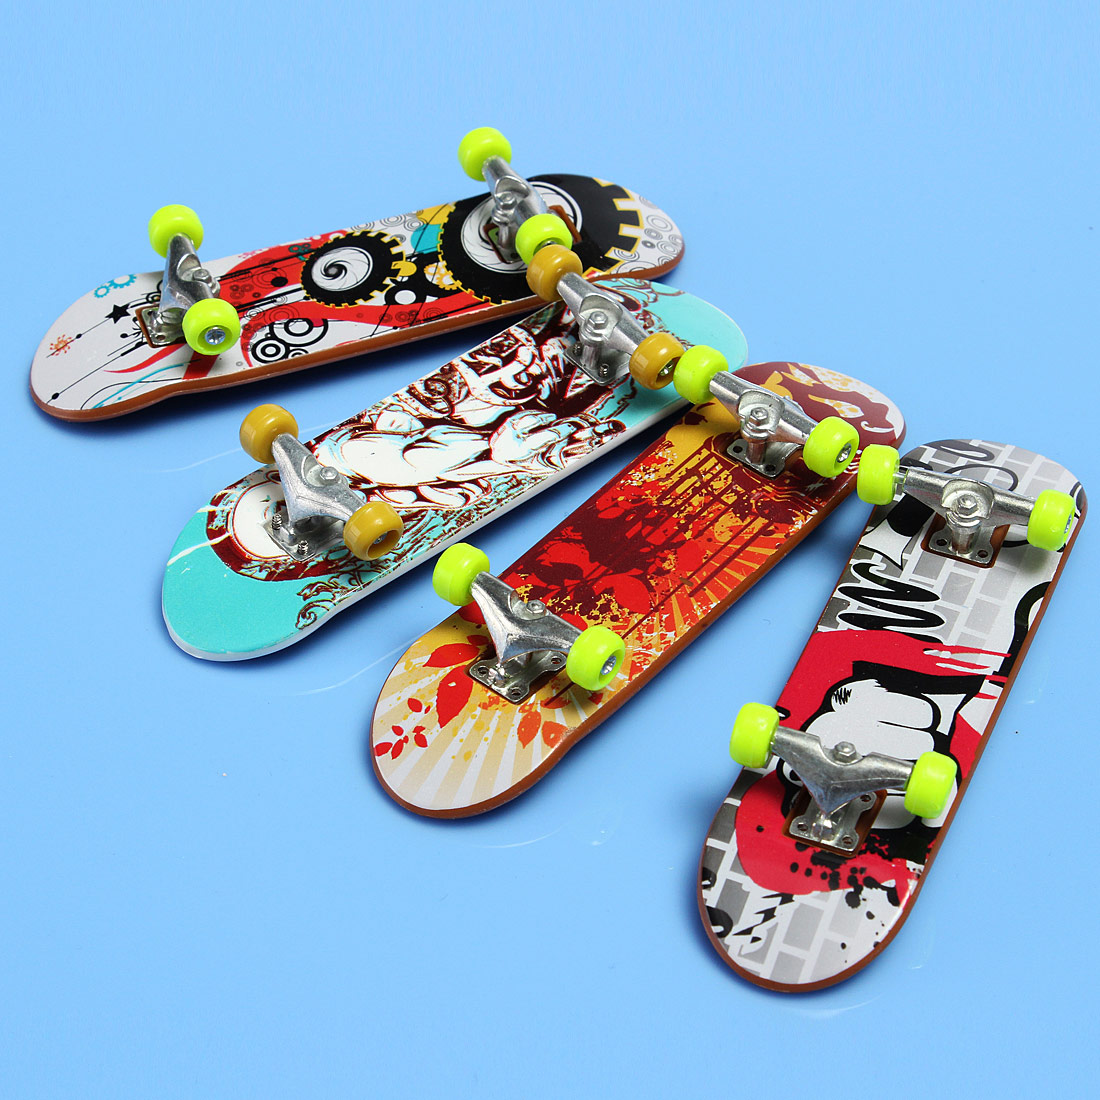 Image Is Loading Finger Board Tech Deck Truck Skateboard Boy Kid